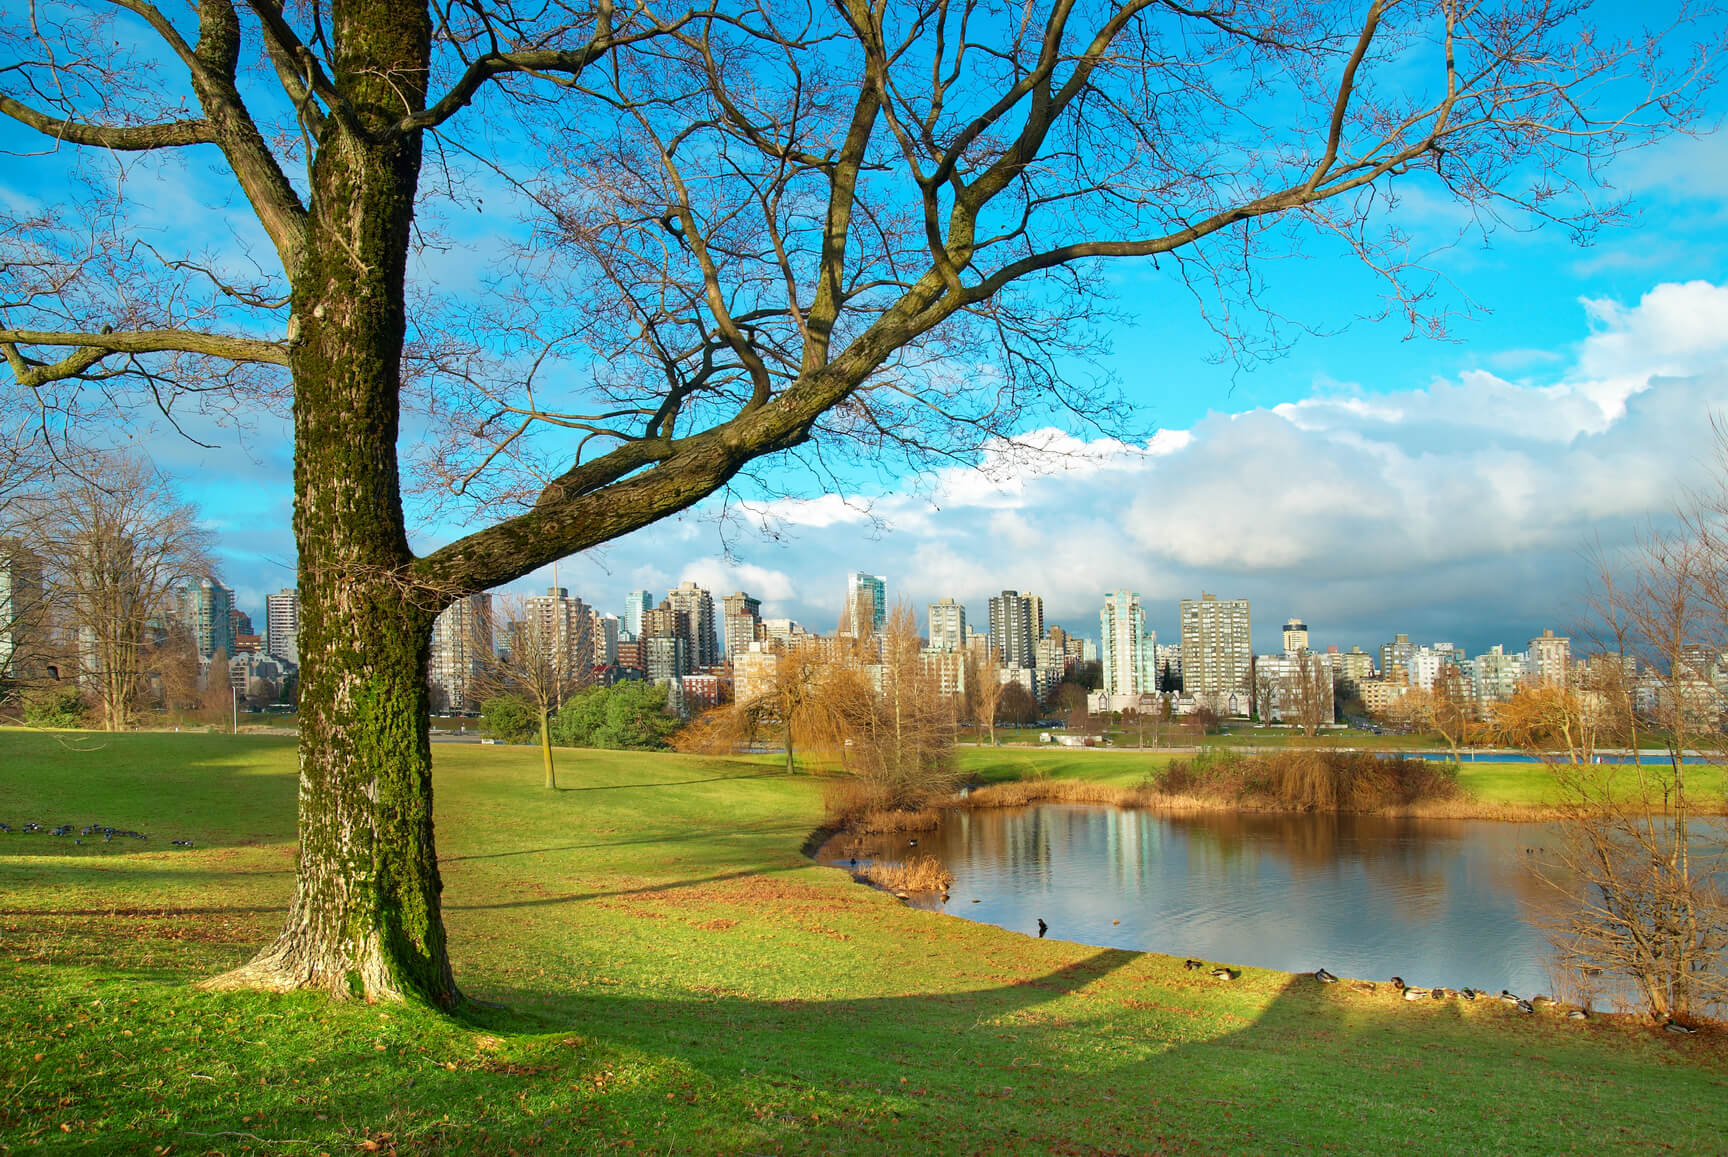 Philadelphia to Vancouver, Canada for only $293 roundtrip